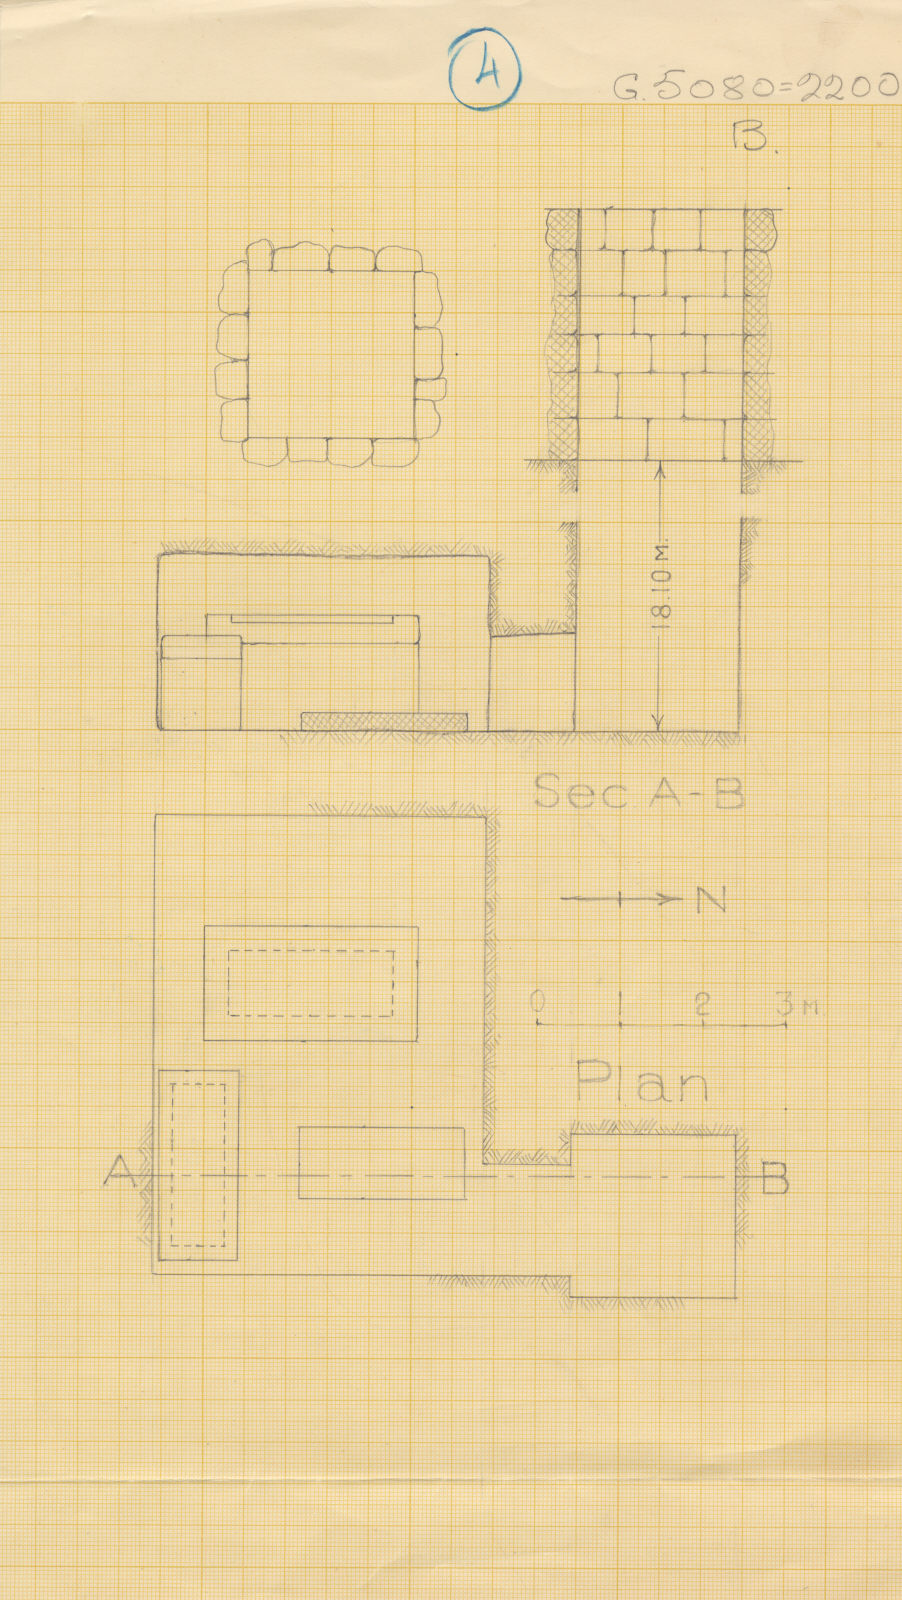 Maps and plans: G 2200, Plan and section